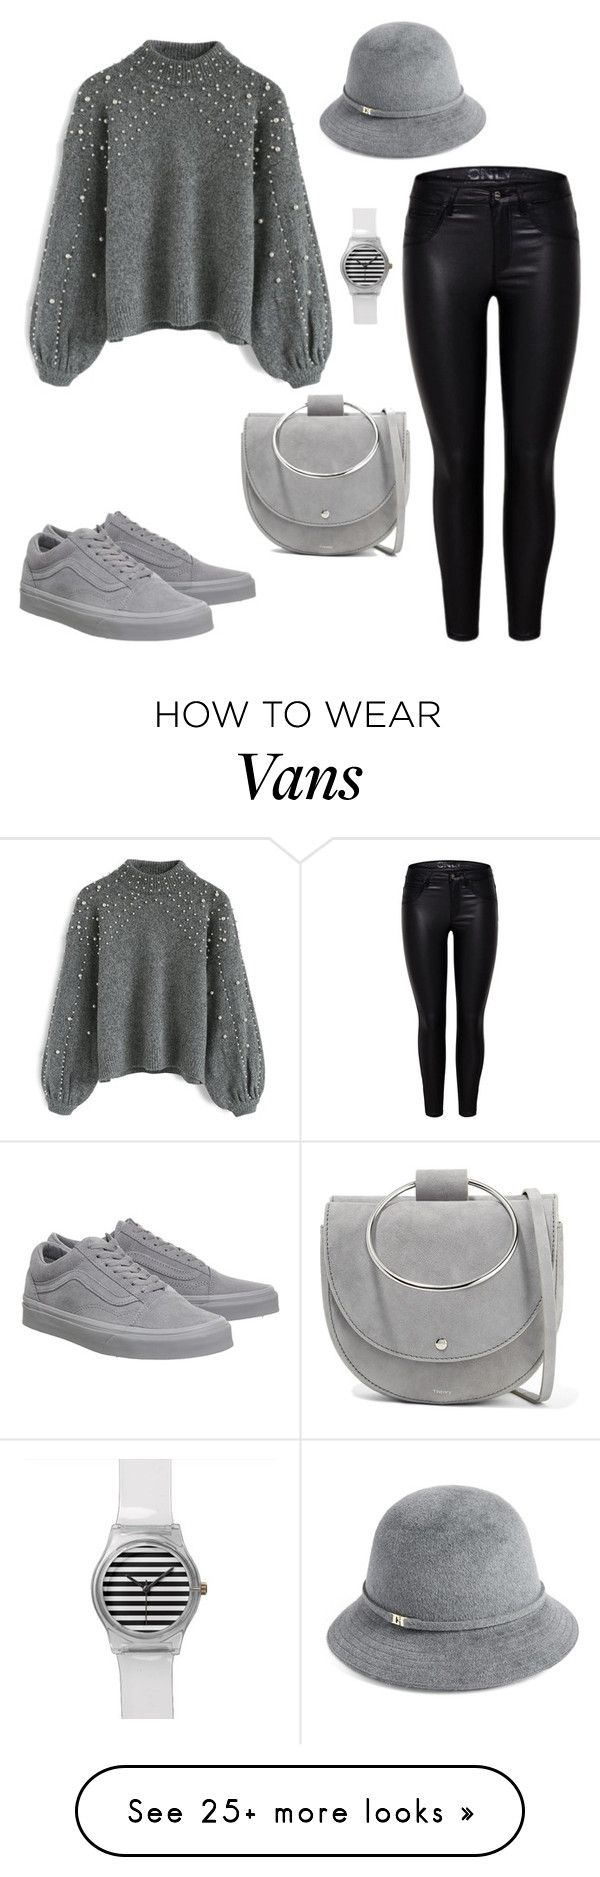 """Untitled #179"" by mmmmrrrr on Polyvore featuring Chicwish, Helen Kaminski, Vans and Theory"